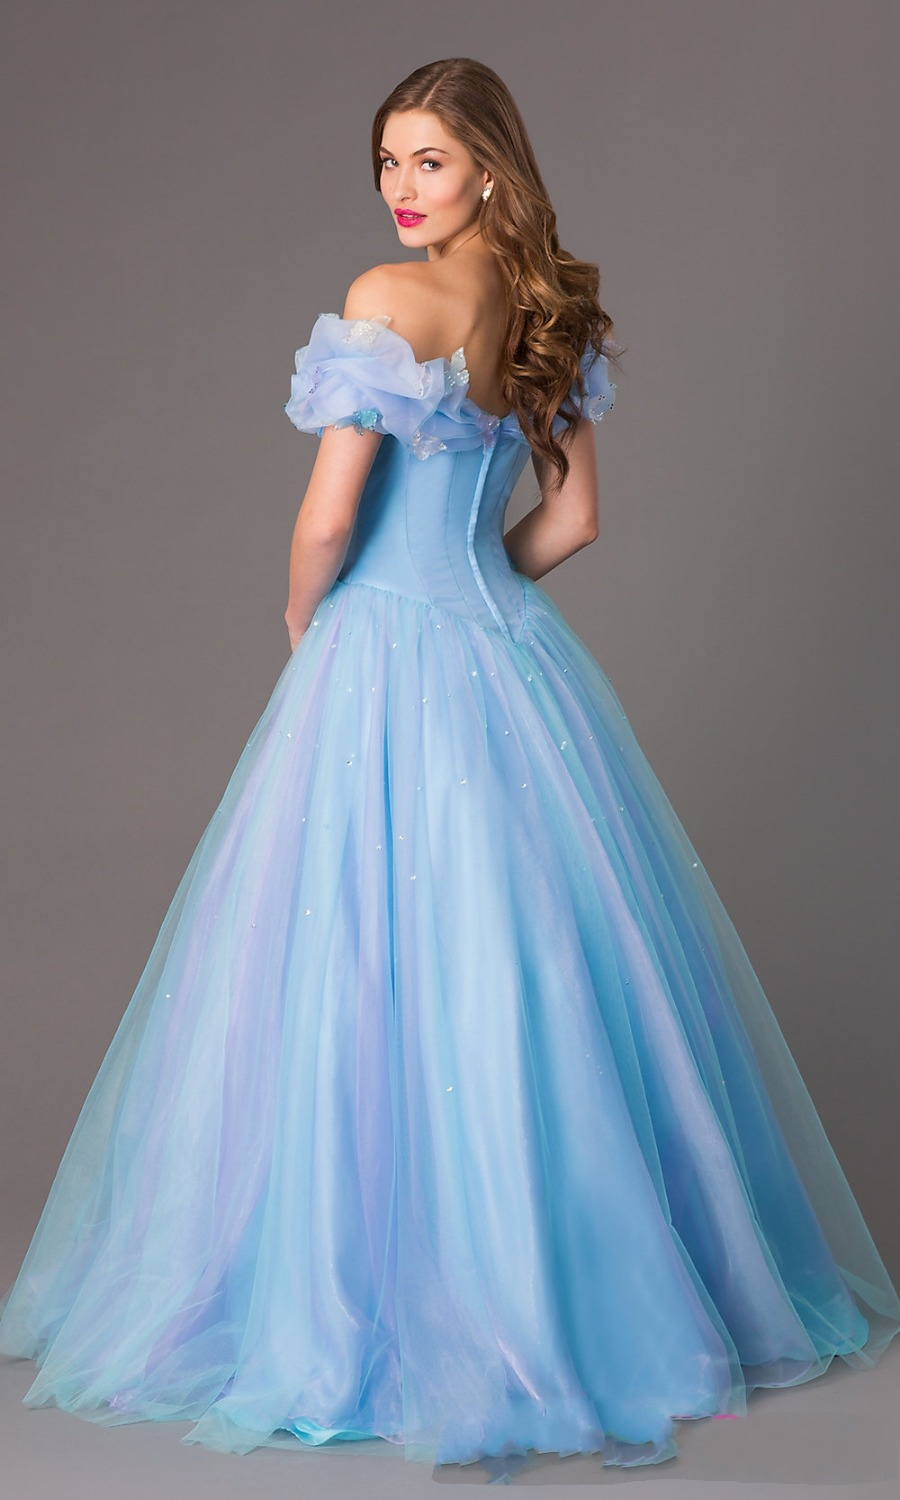 New arrival ice blue prom dresses 2015 RP10 ball gown party dress ...